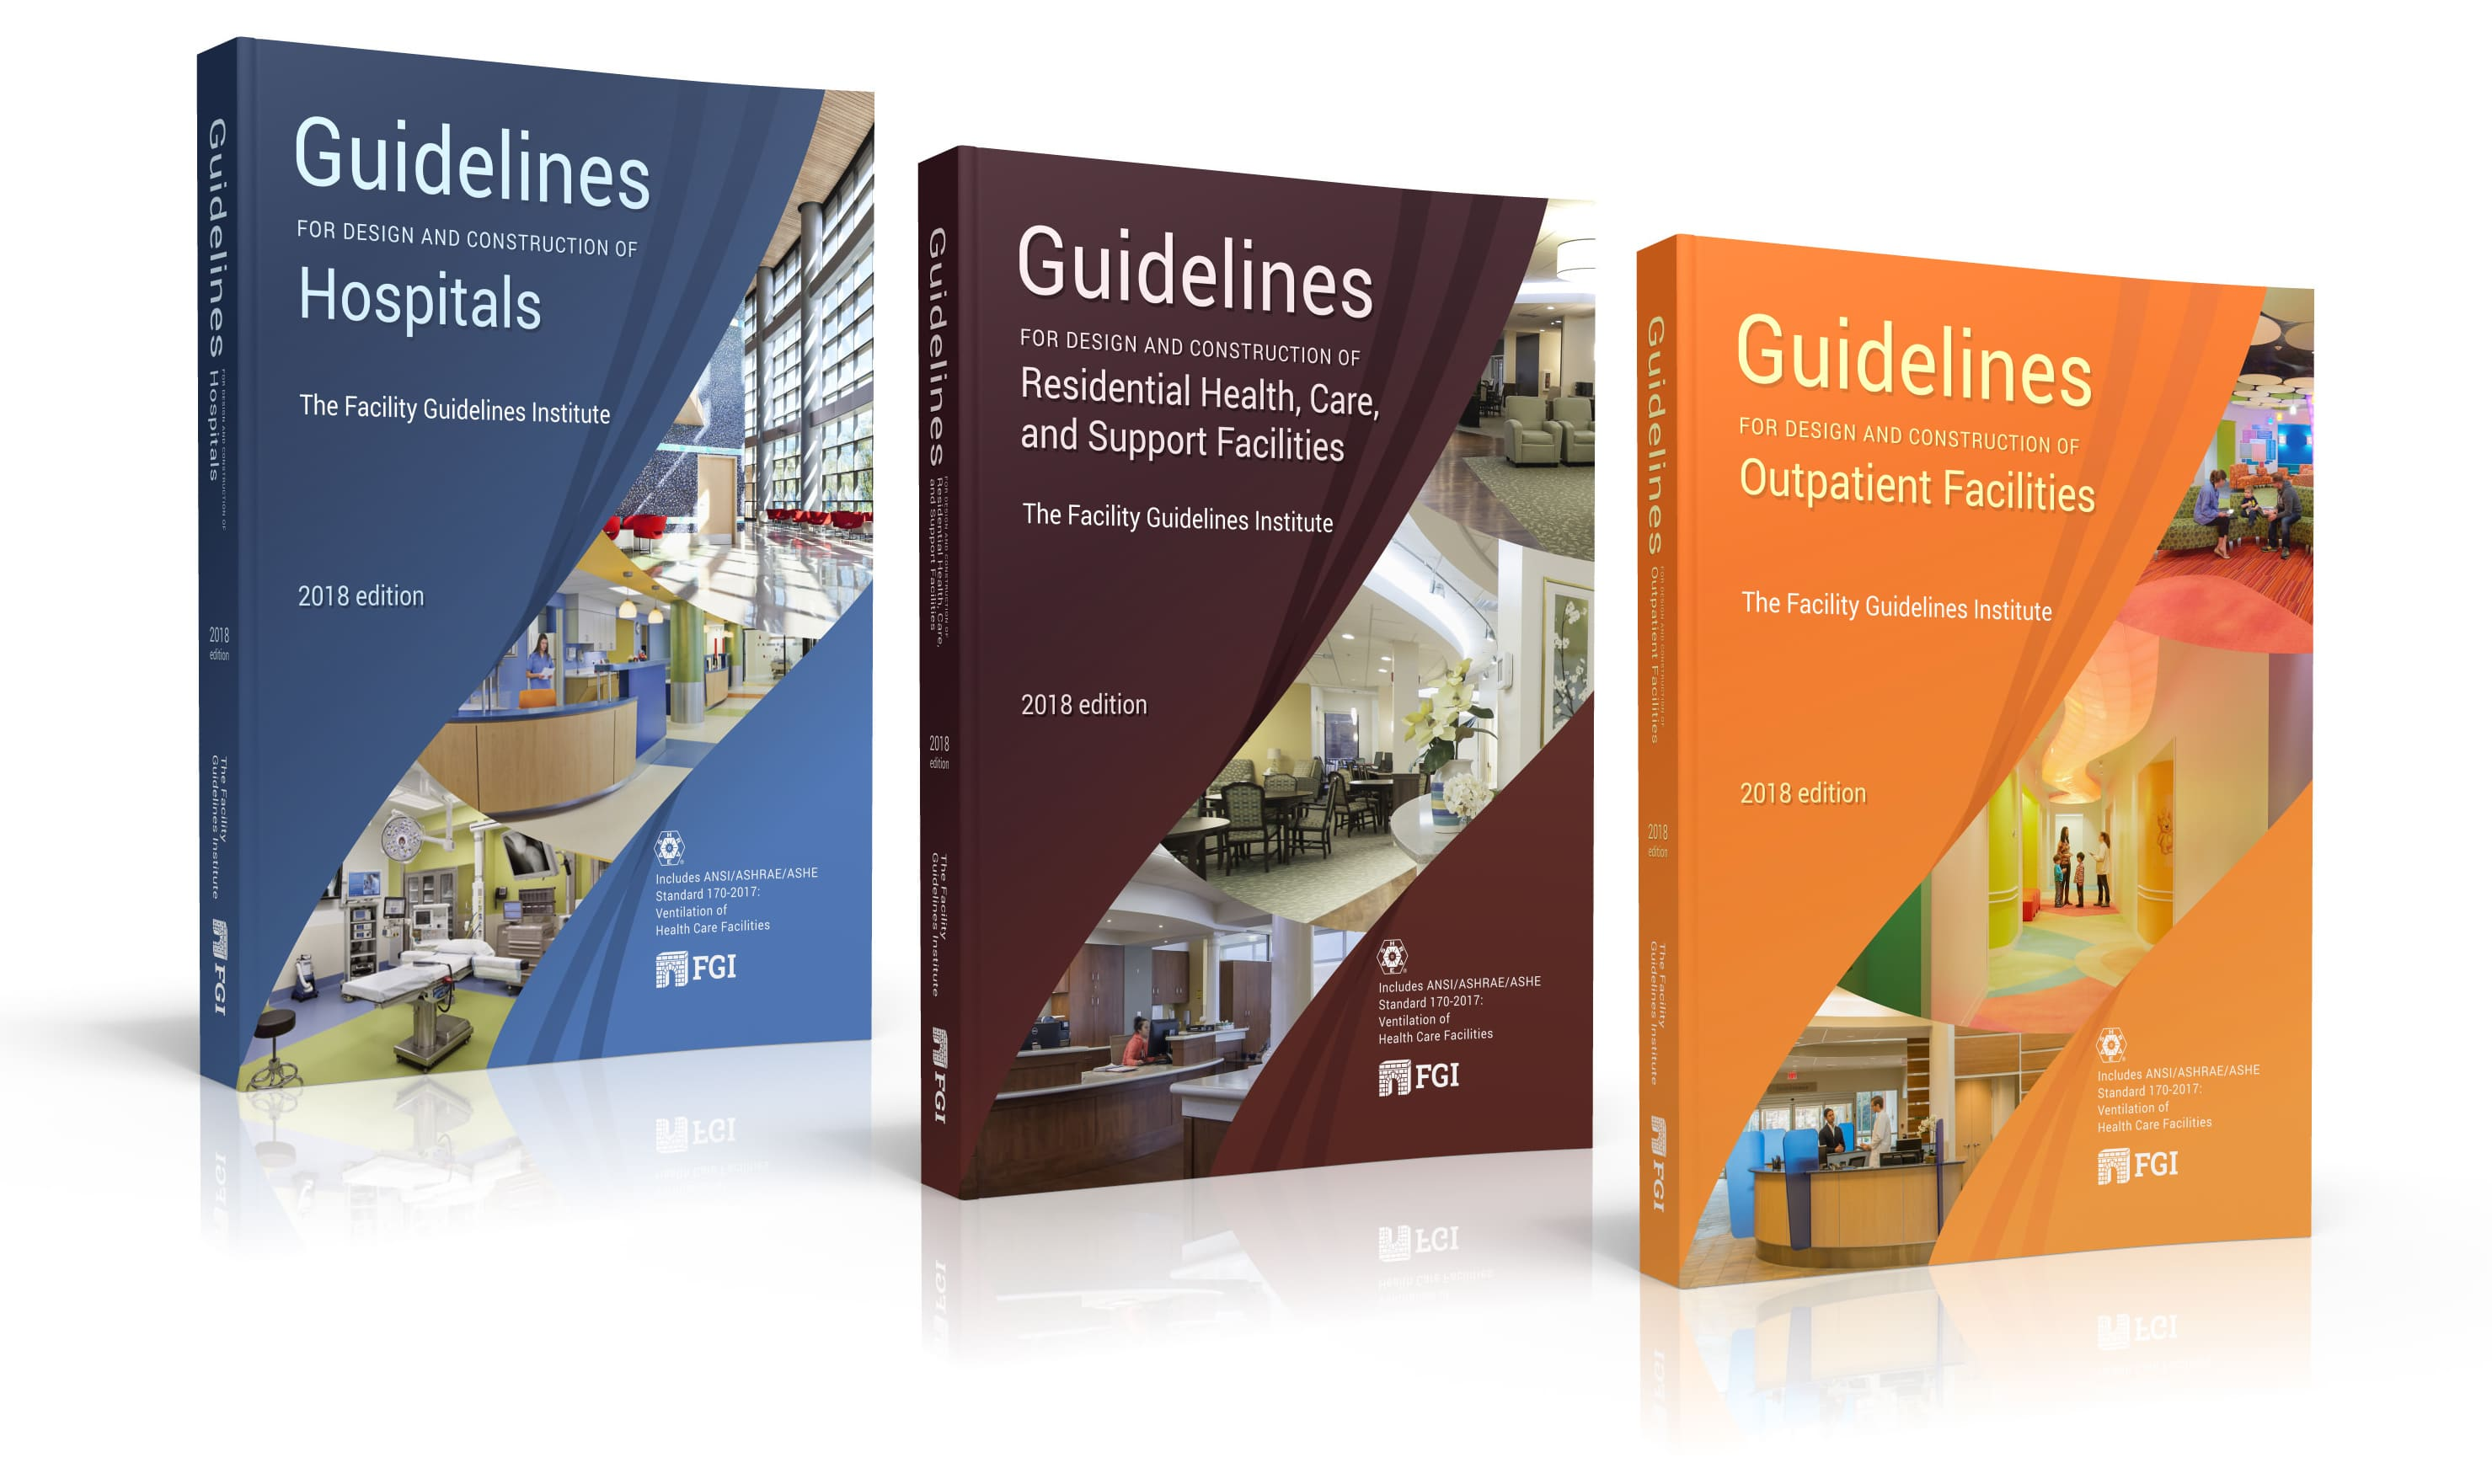 guidelines for designing a hospital Welcome to ihfg this is the home of international guidelines for the planning, briefing, design & construction of healthcare facilities these guidelines place emphasis on achieving outcomes which reflect current healthcare practice in a safe and appropriate environment at a reasonable facility cost.